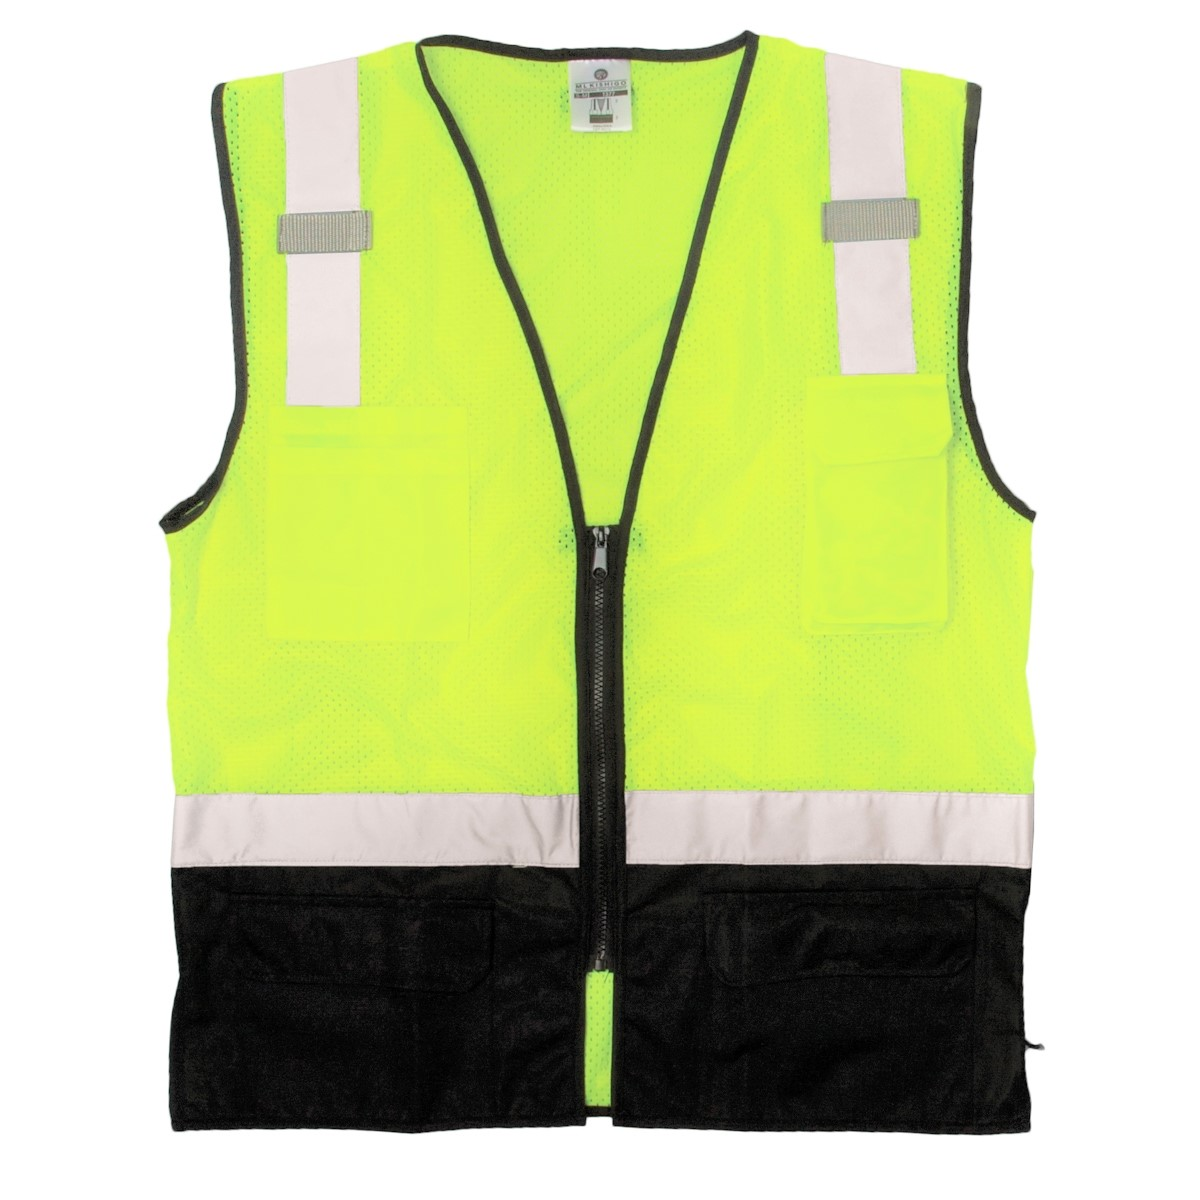 All Products Hi Viz Safety Wear High Visibility Apparel Store